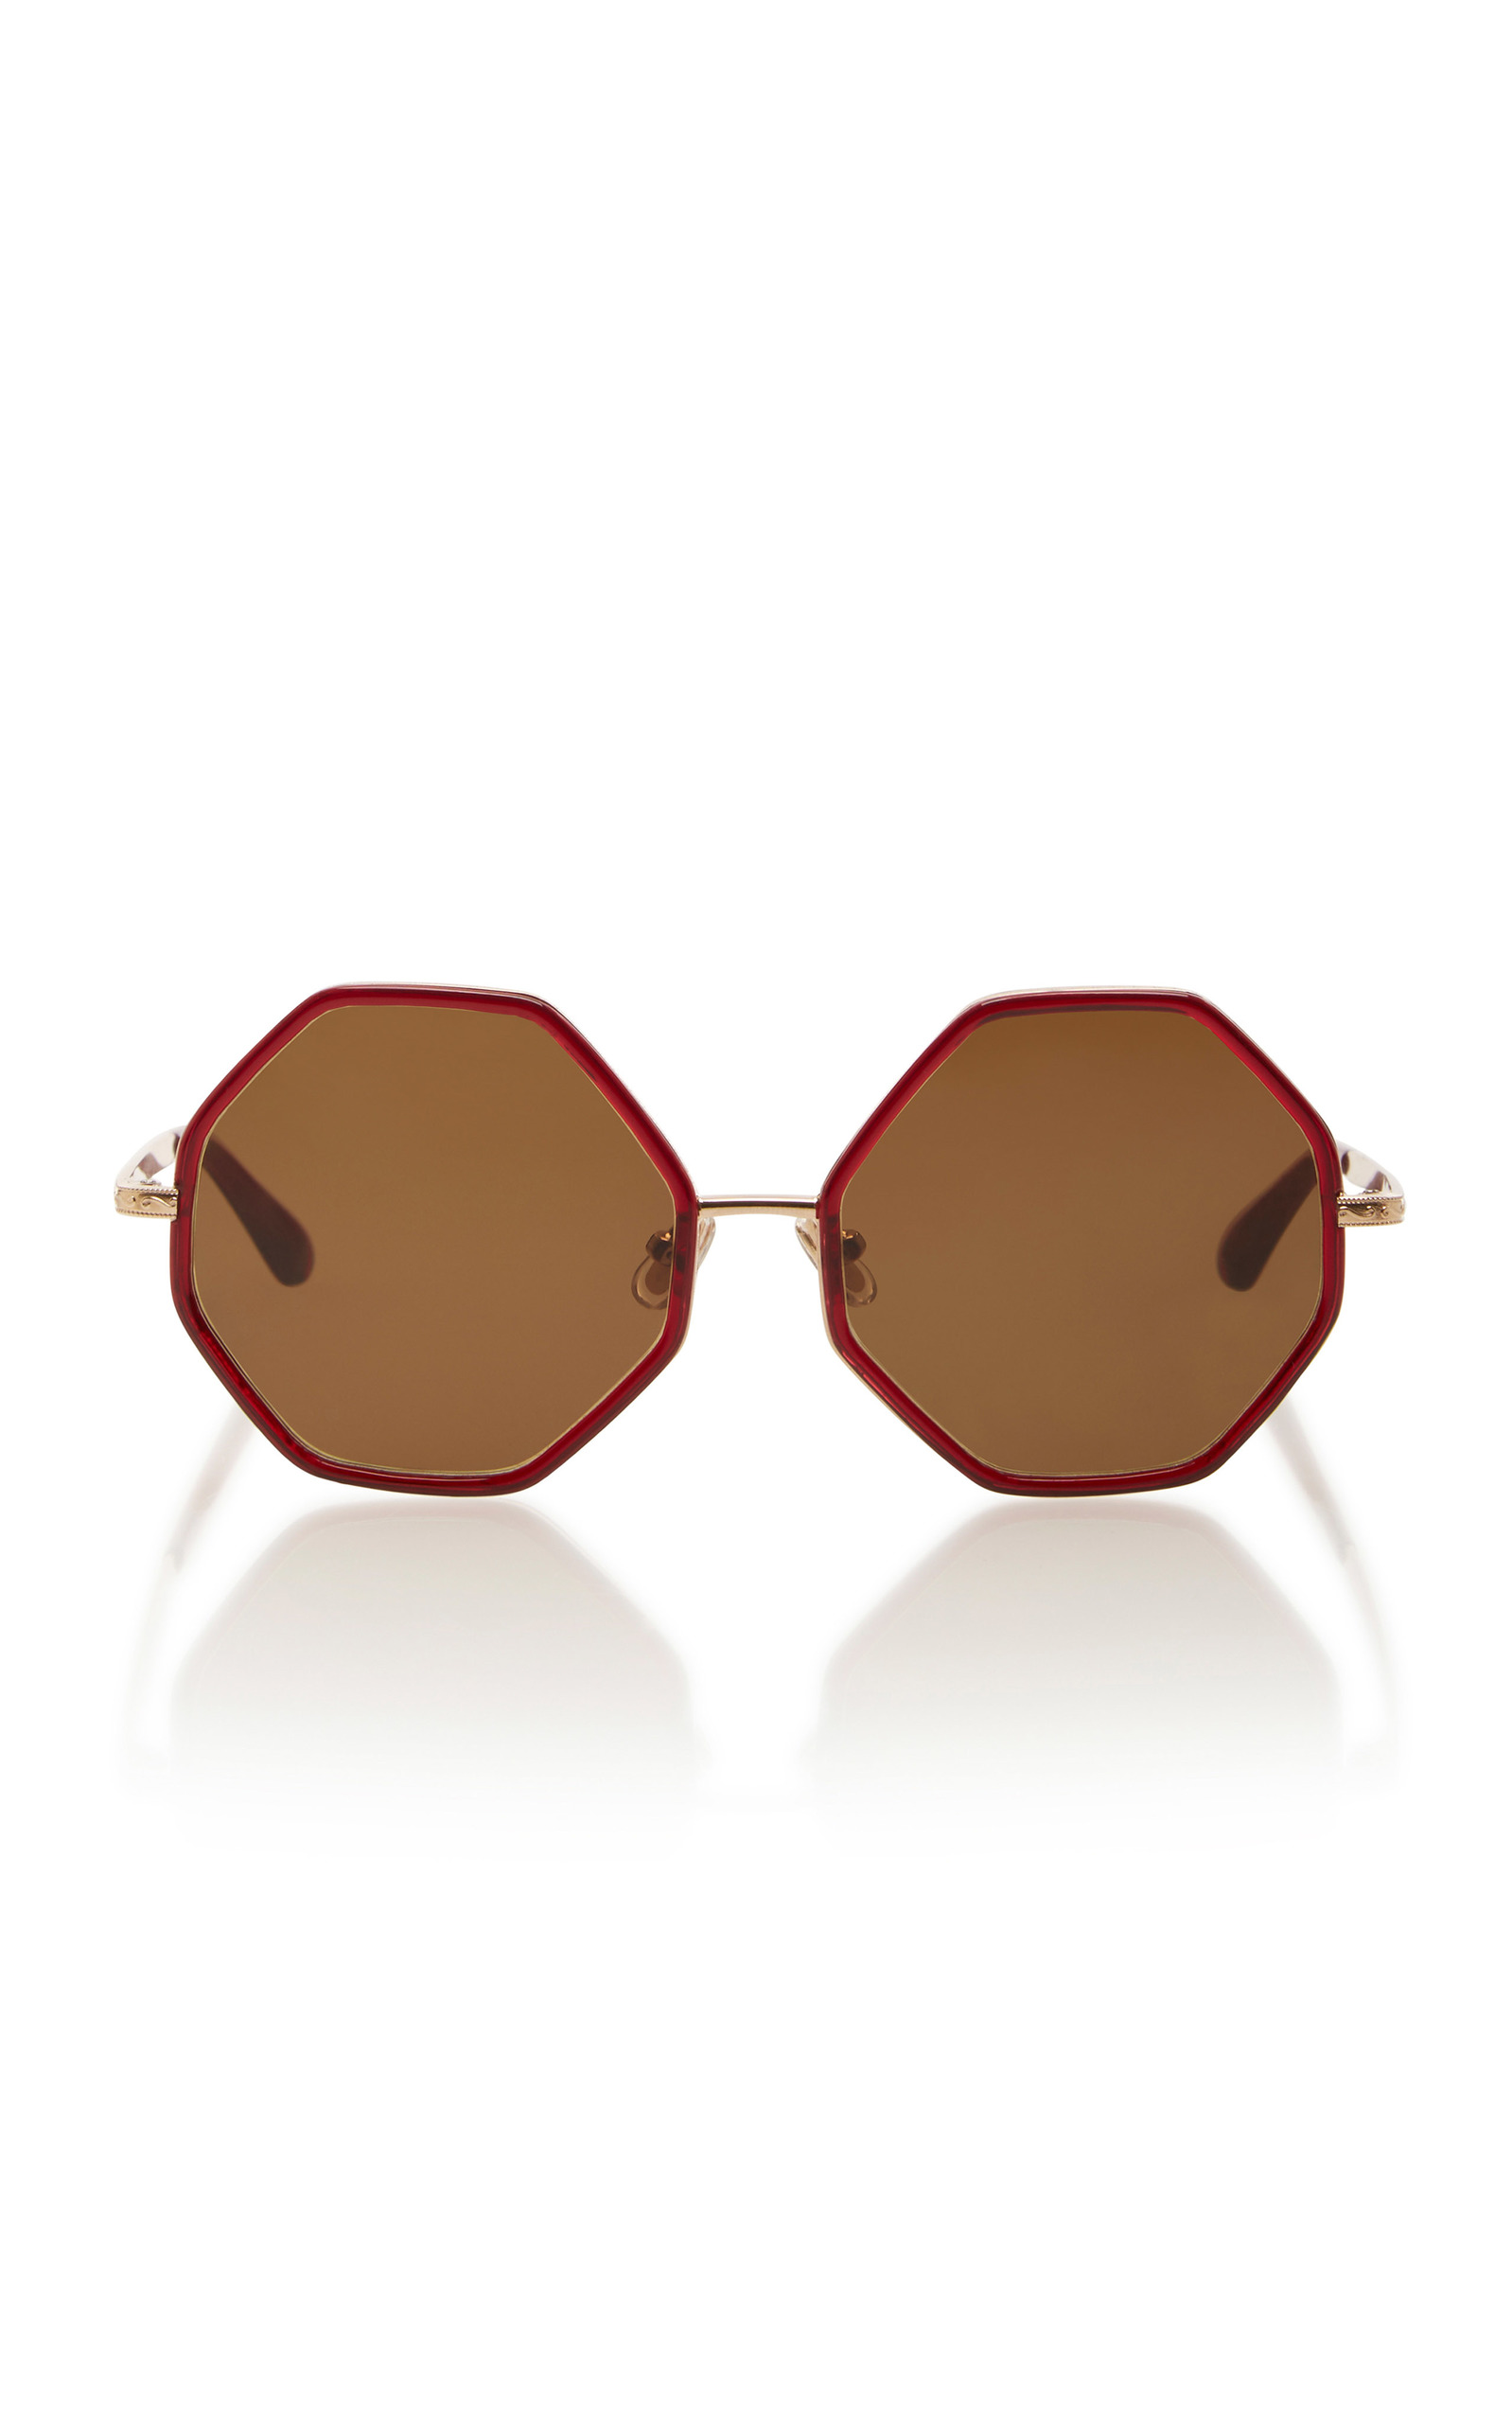 3ea18f77b2 Rosie Assoulin Large Octagon Sunglasses In Burgundy